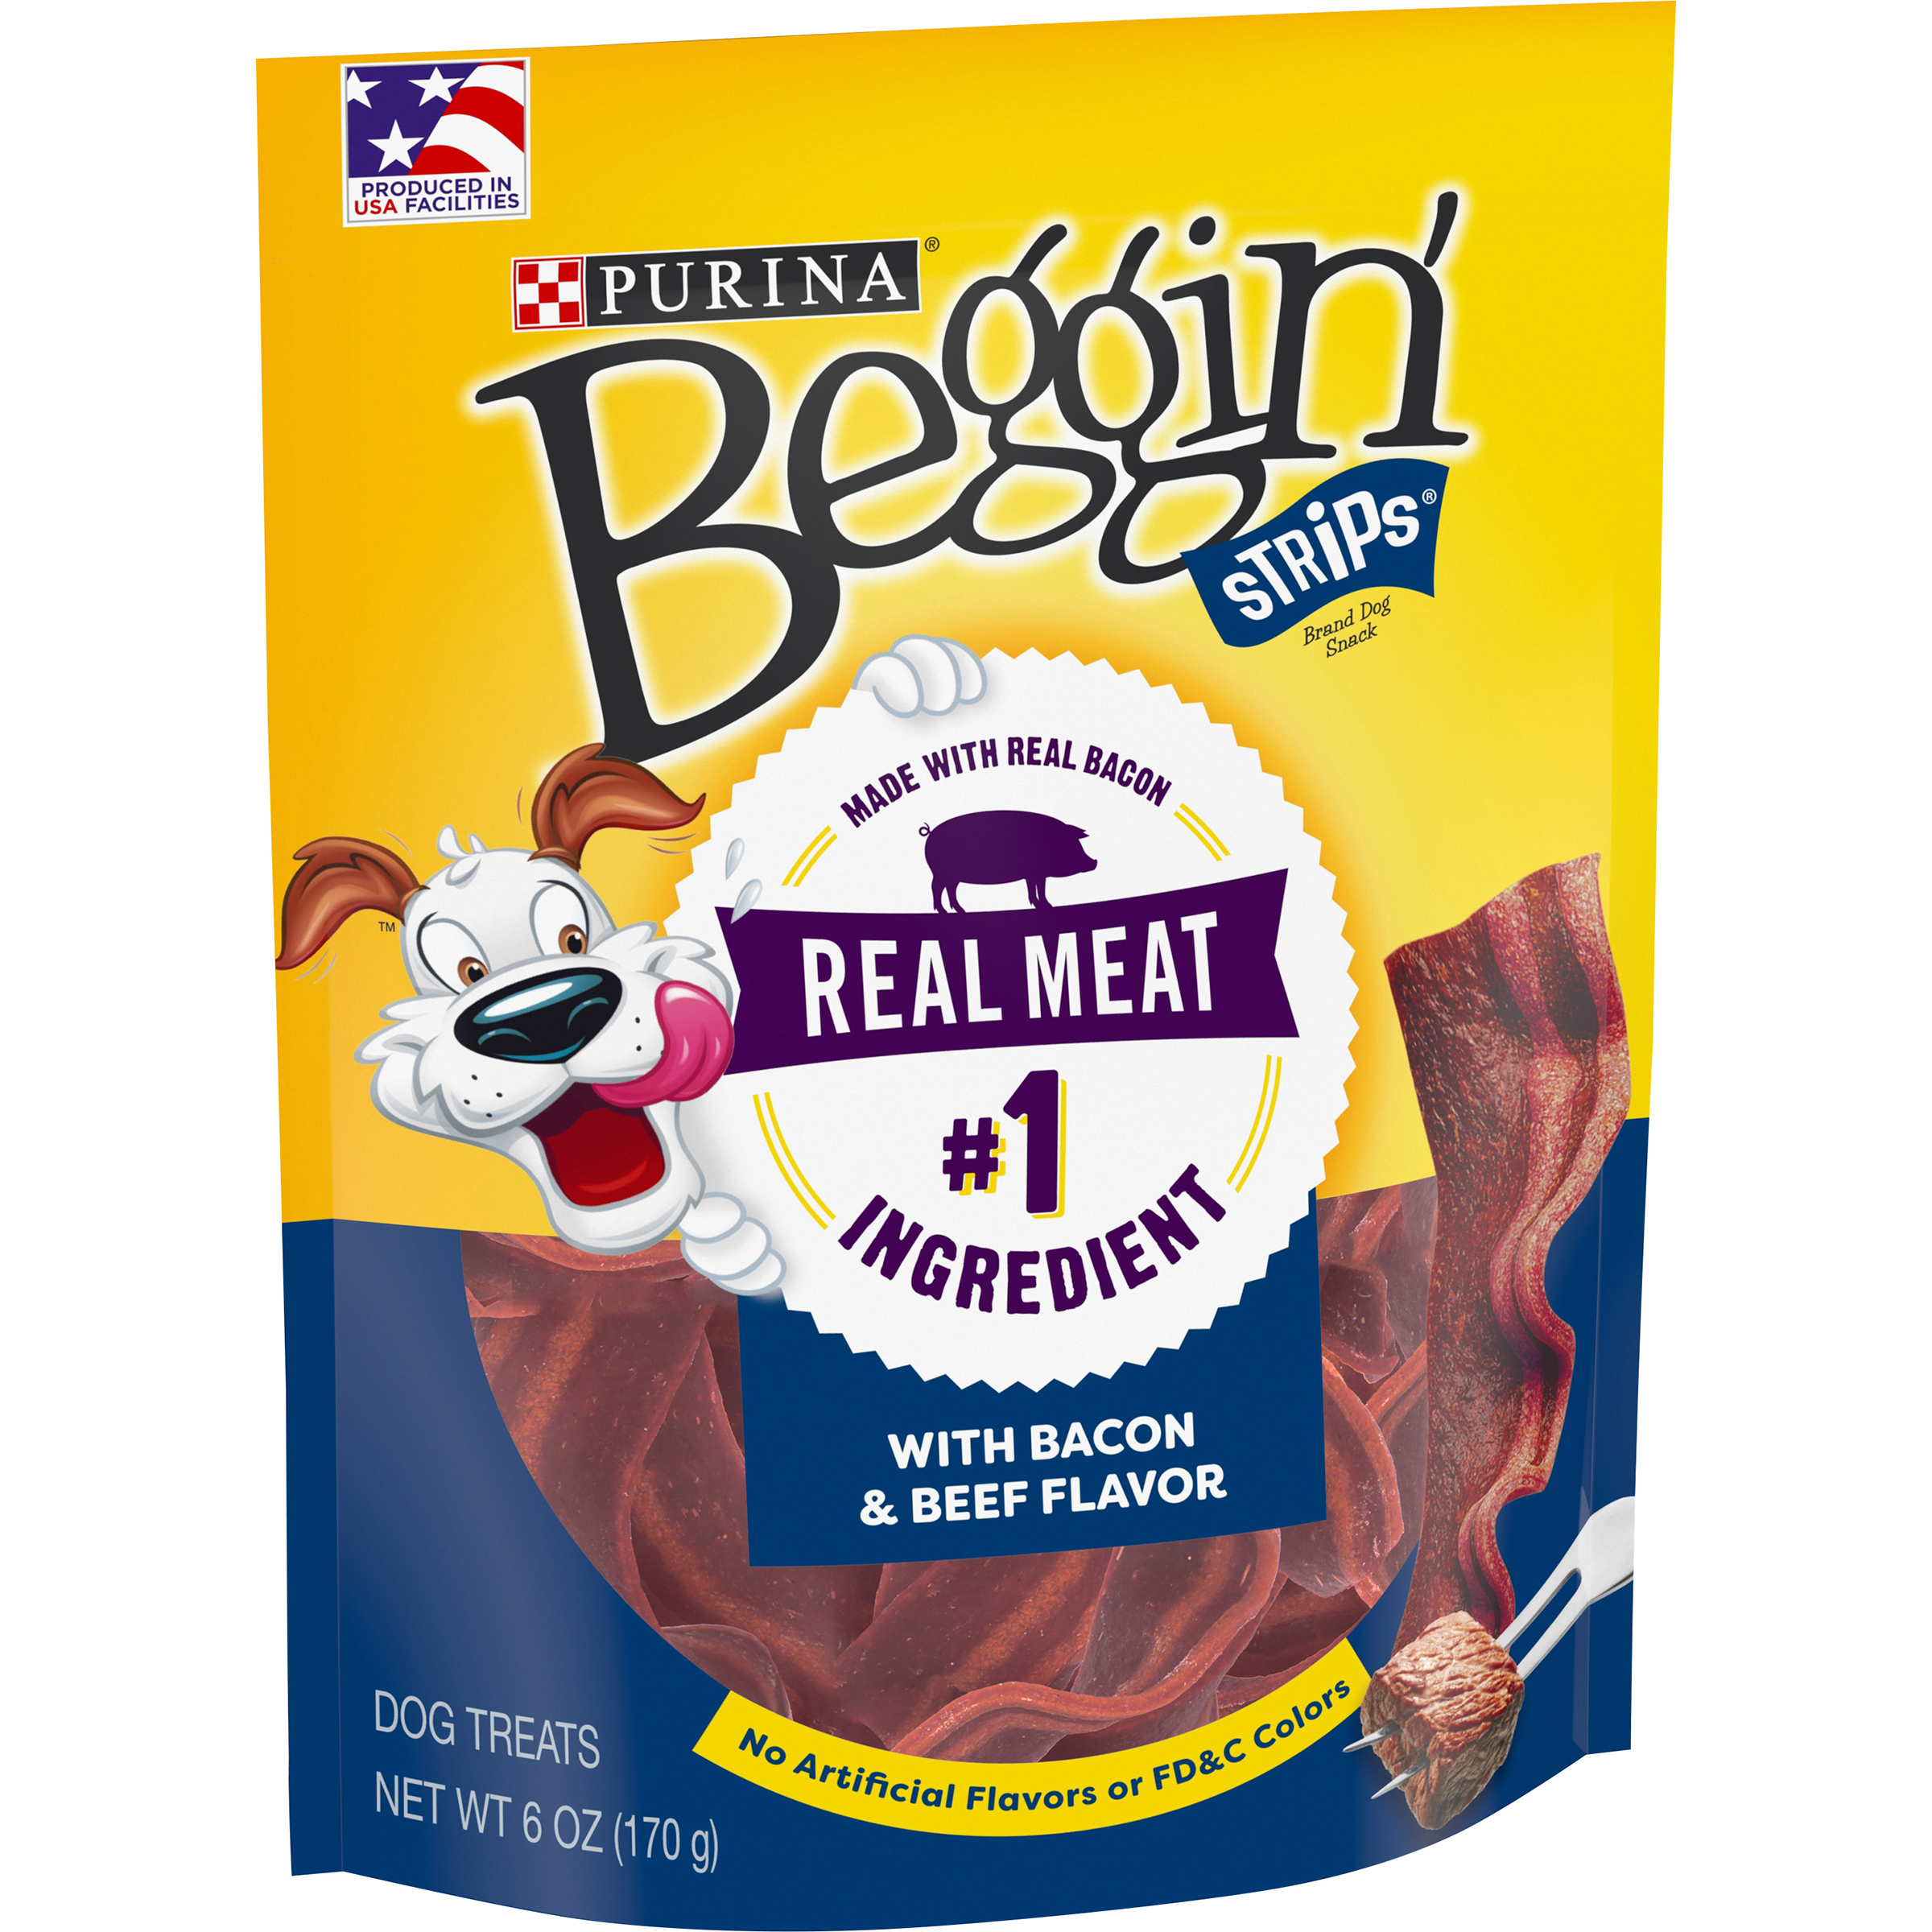 Purina Beggin' Strips Made in USA Facilities Dog Training Treats; Bacon & Beef Flavors - 6 oz. Pouch